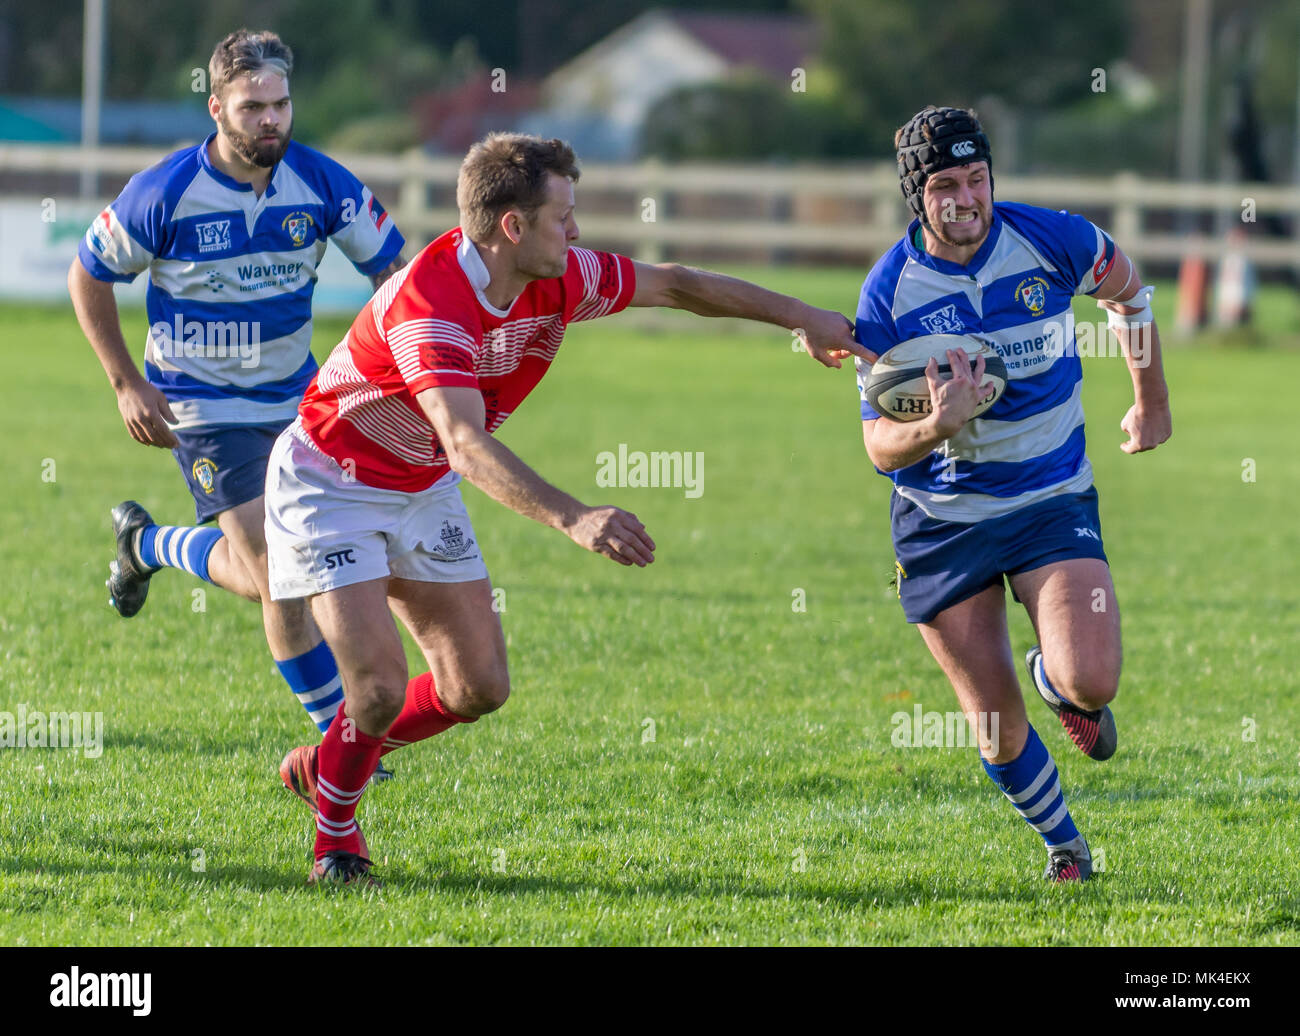 Amateur rugby match - attacker with ball in one hand sprints passed tackler who is reaching out, with an attacking teammate in the background - Stock Image